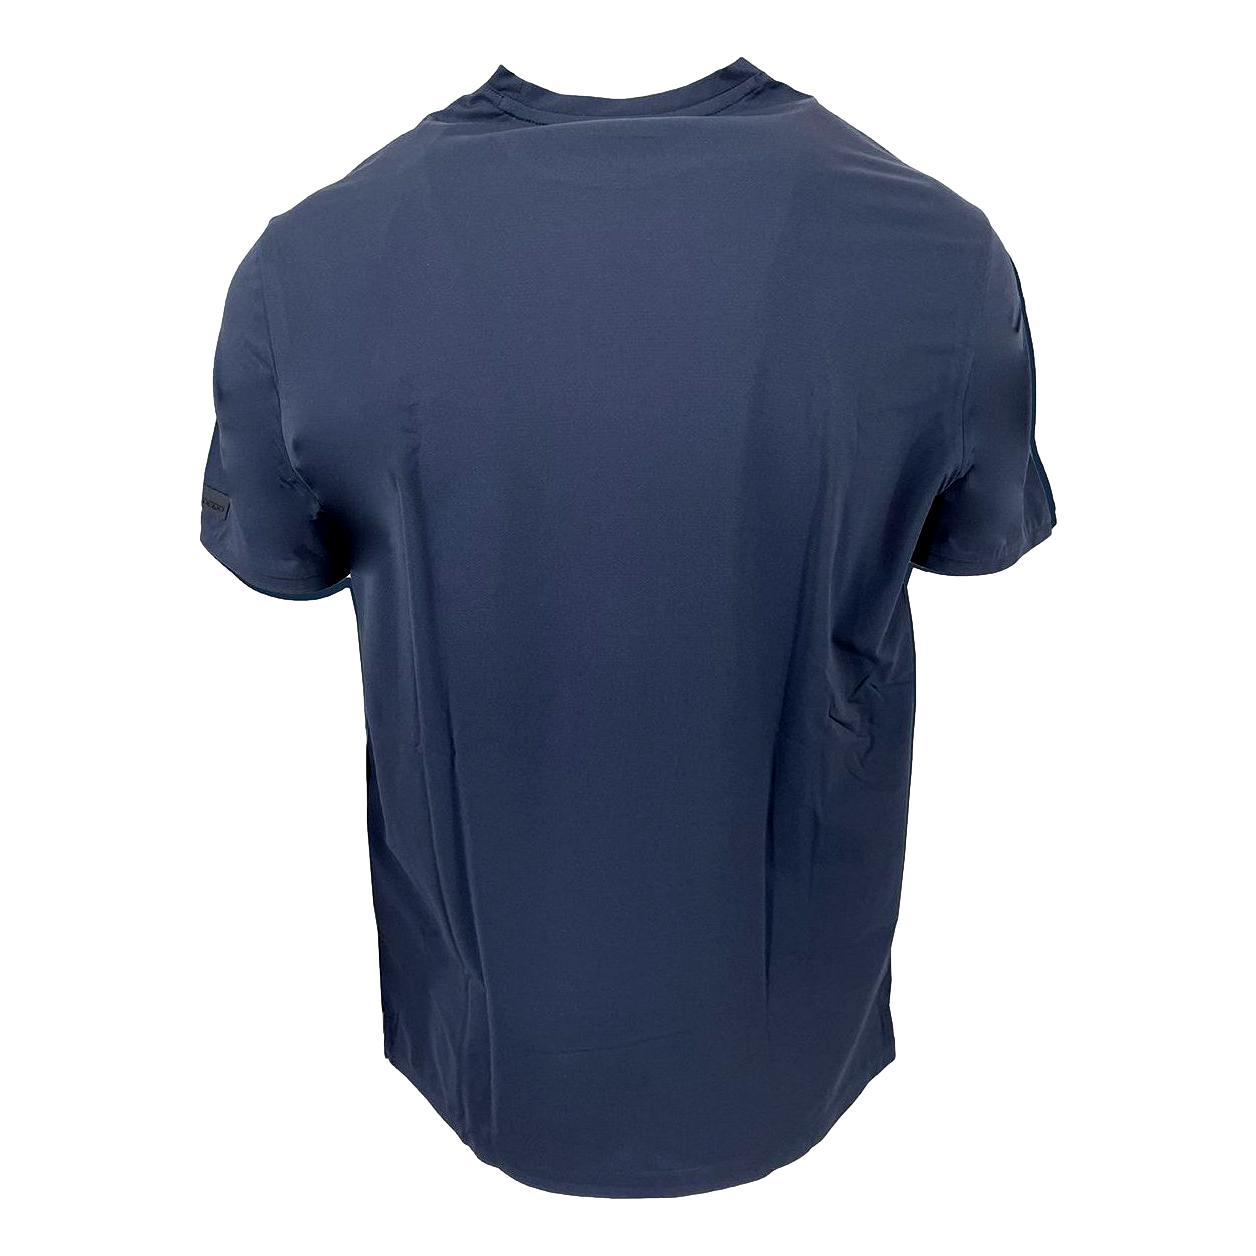 T-Shirt shirty oxford RRD blue/ BLACK RRD | T-shirt | 2116860